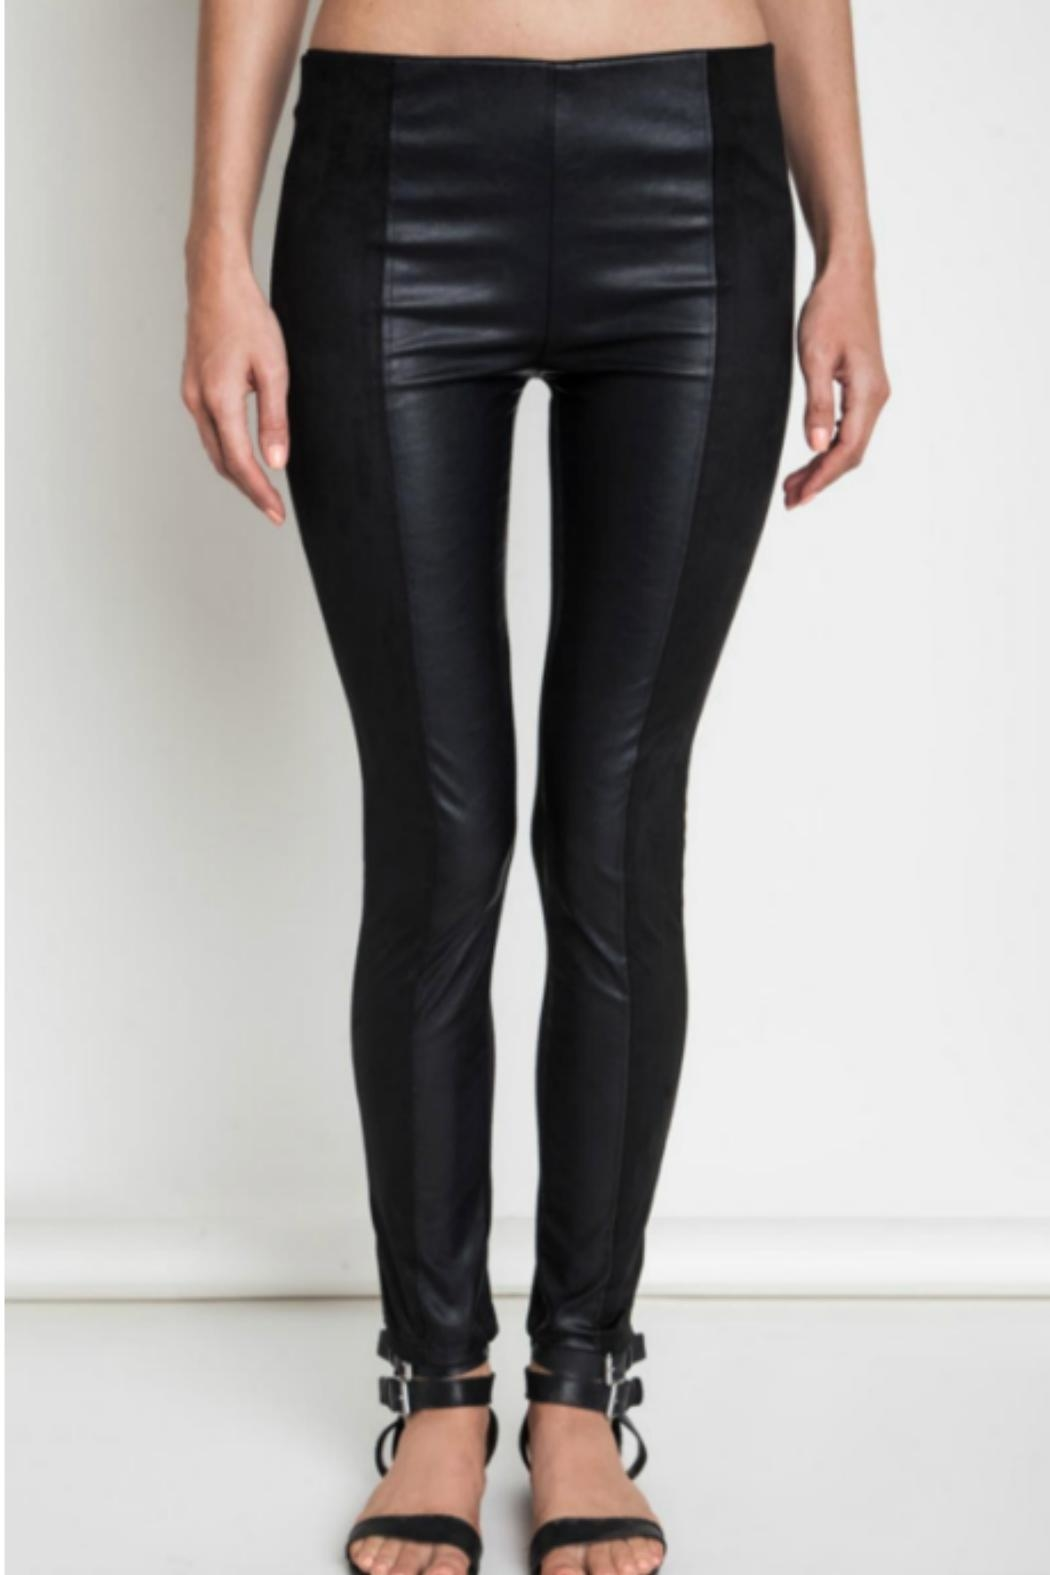 Umgee USA Faux Leather/suede Leggings - Main Image